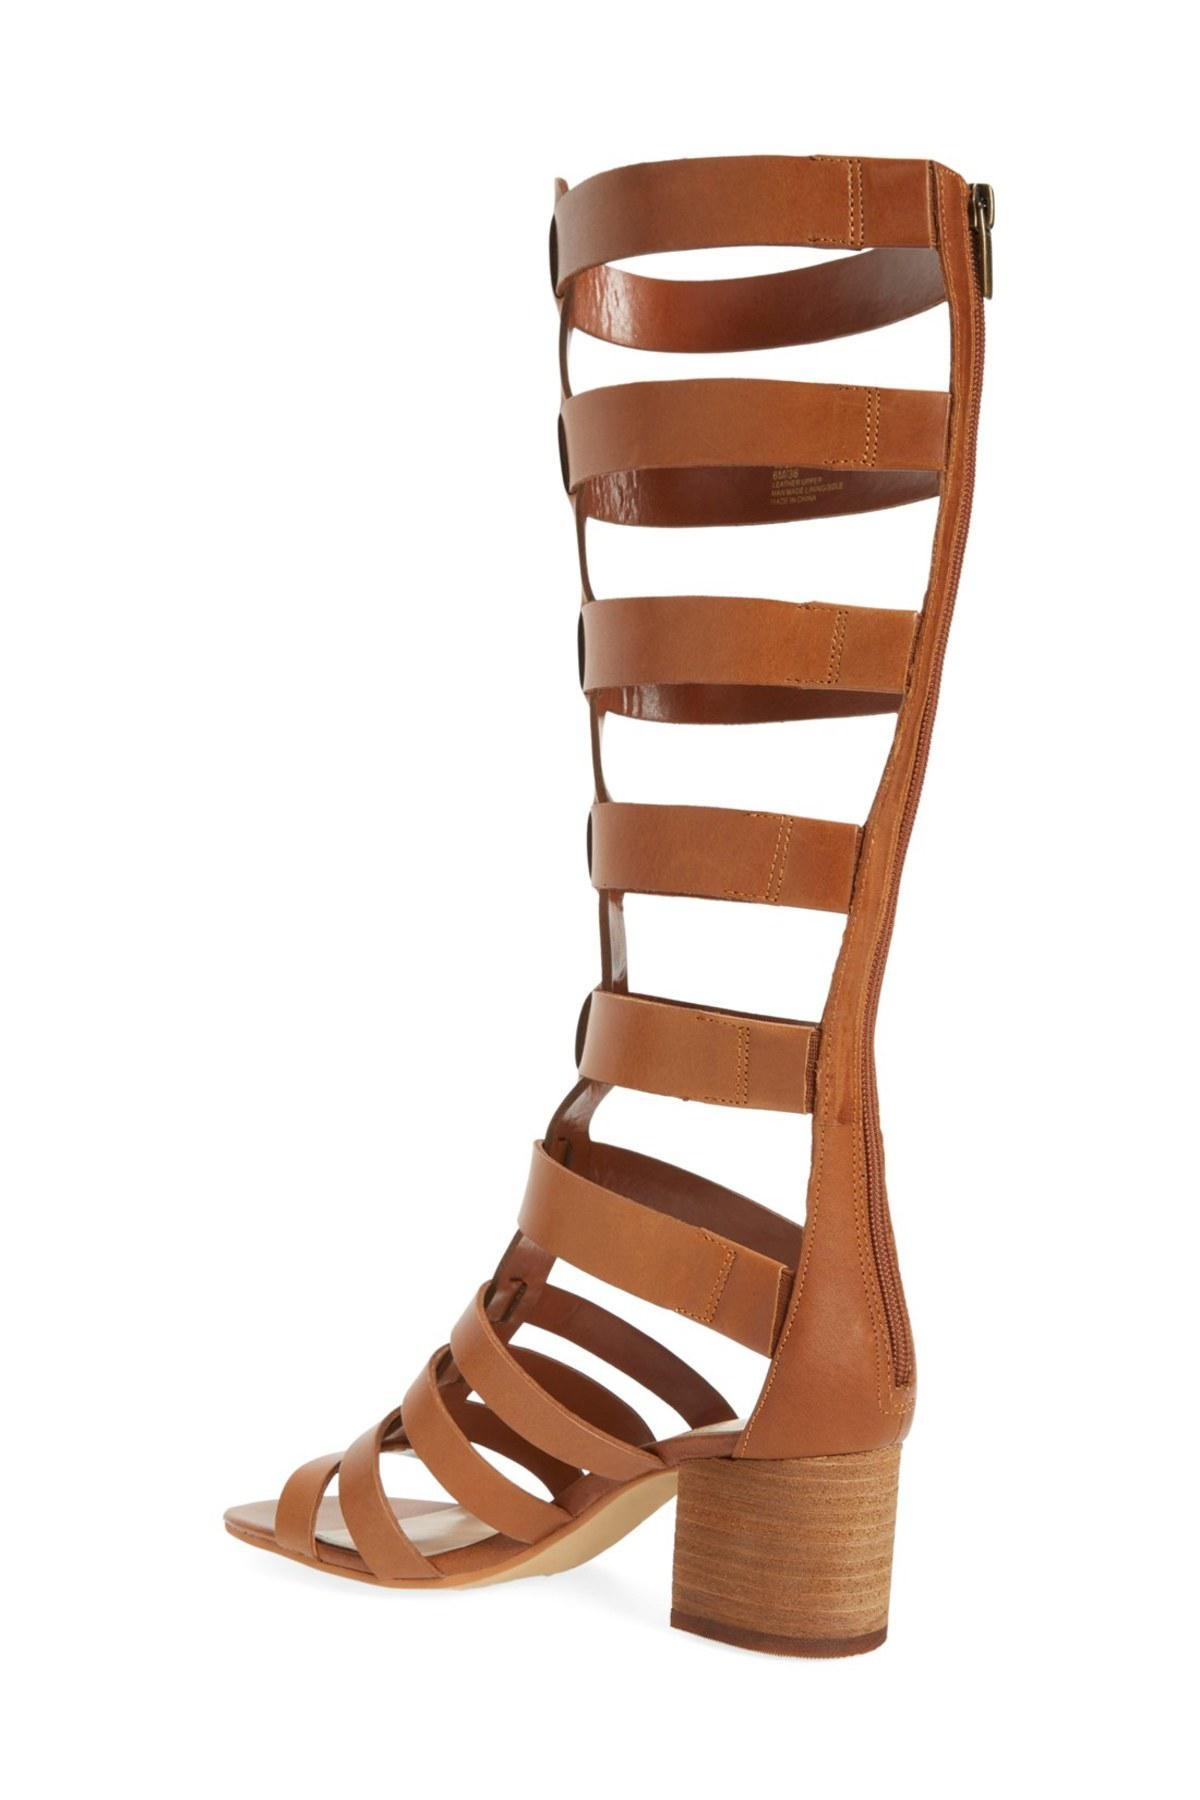 Lyst Vince Camuto Brenton Gladiator Sandal In Brown